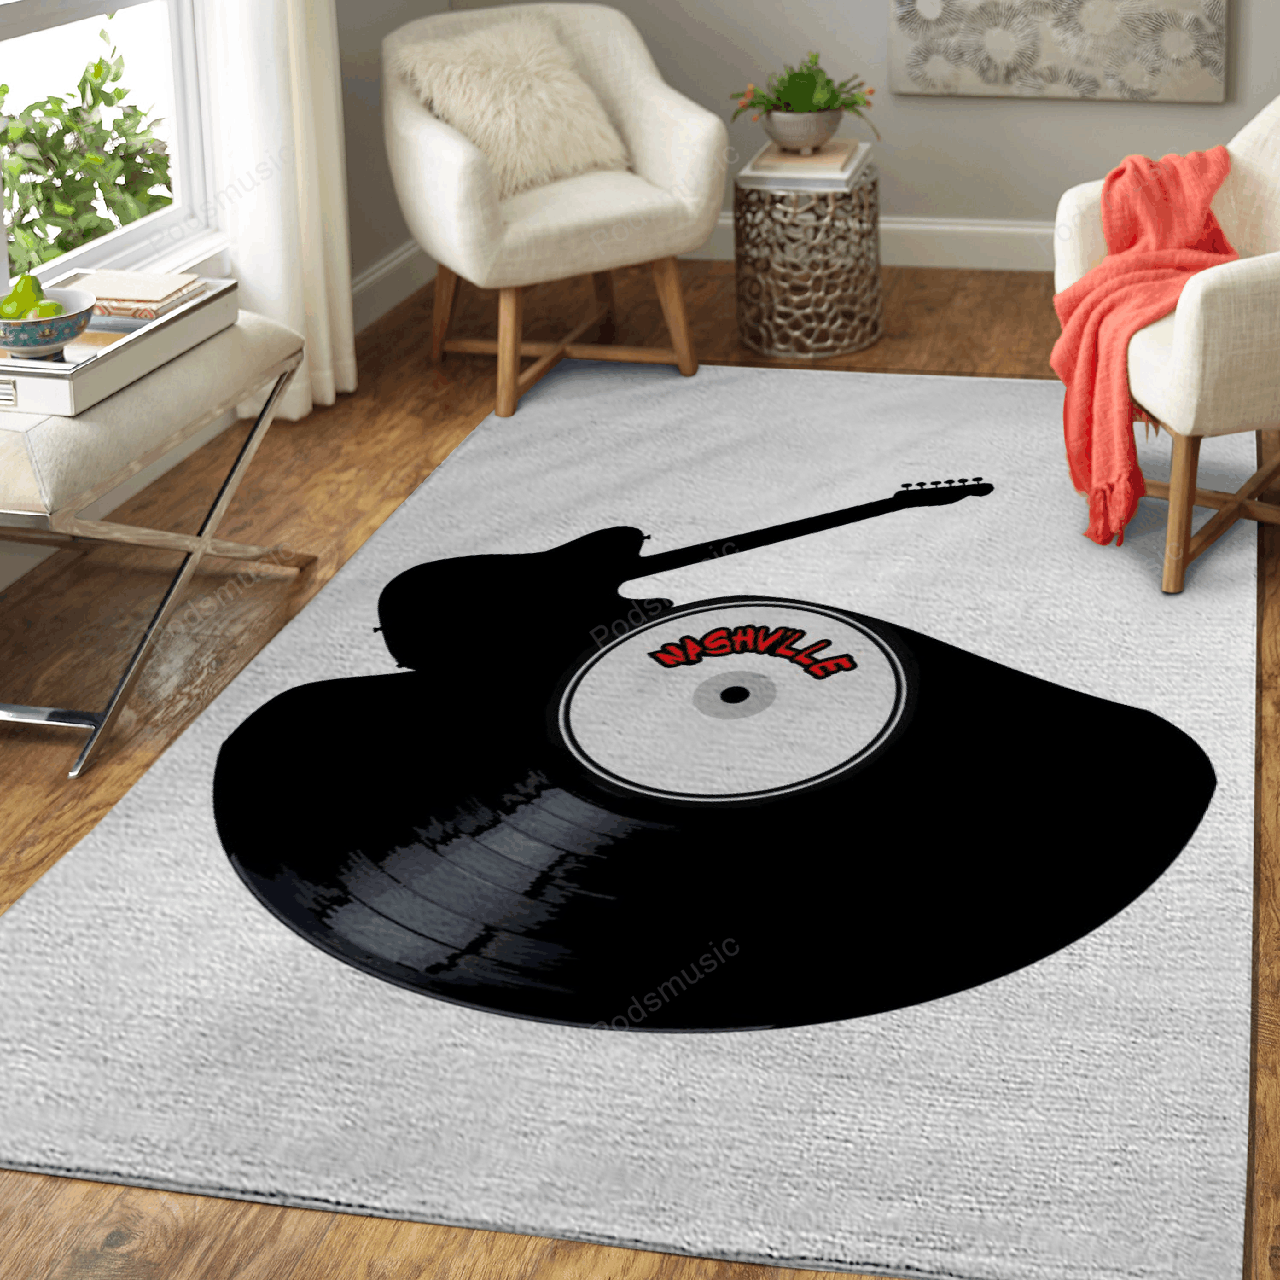 Nashville Country Music - Musical Art For Fans Area Rug Living Room Carpet Floor Decor